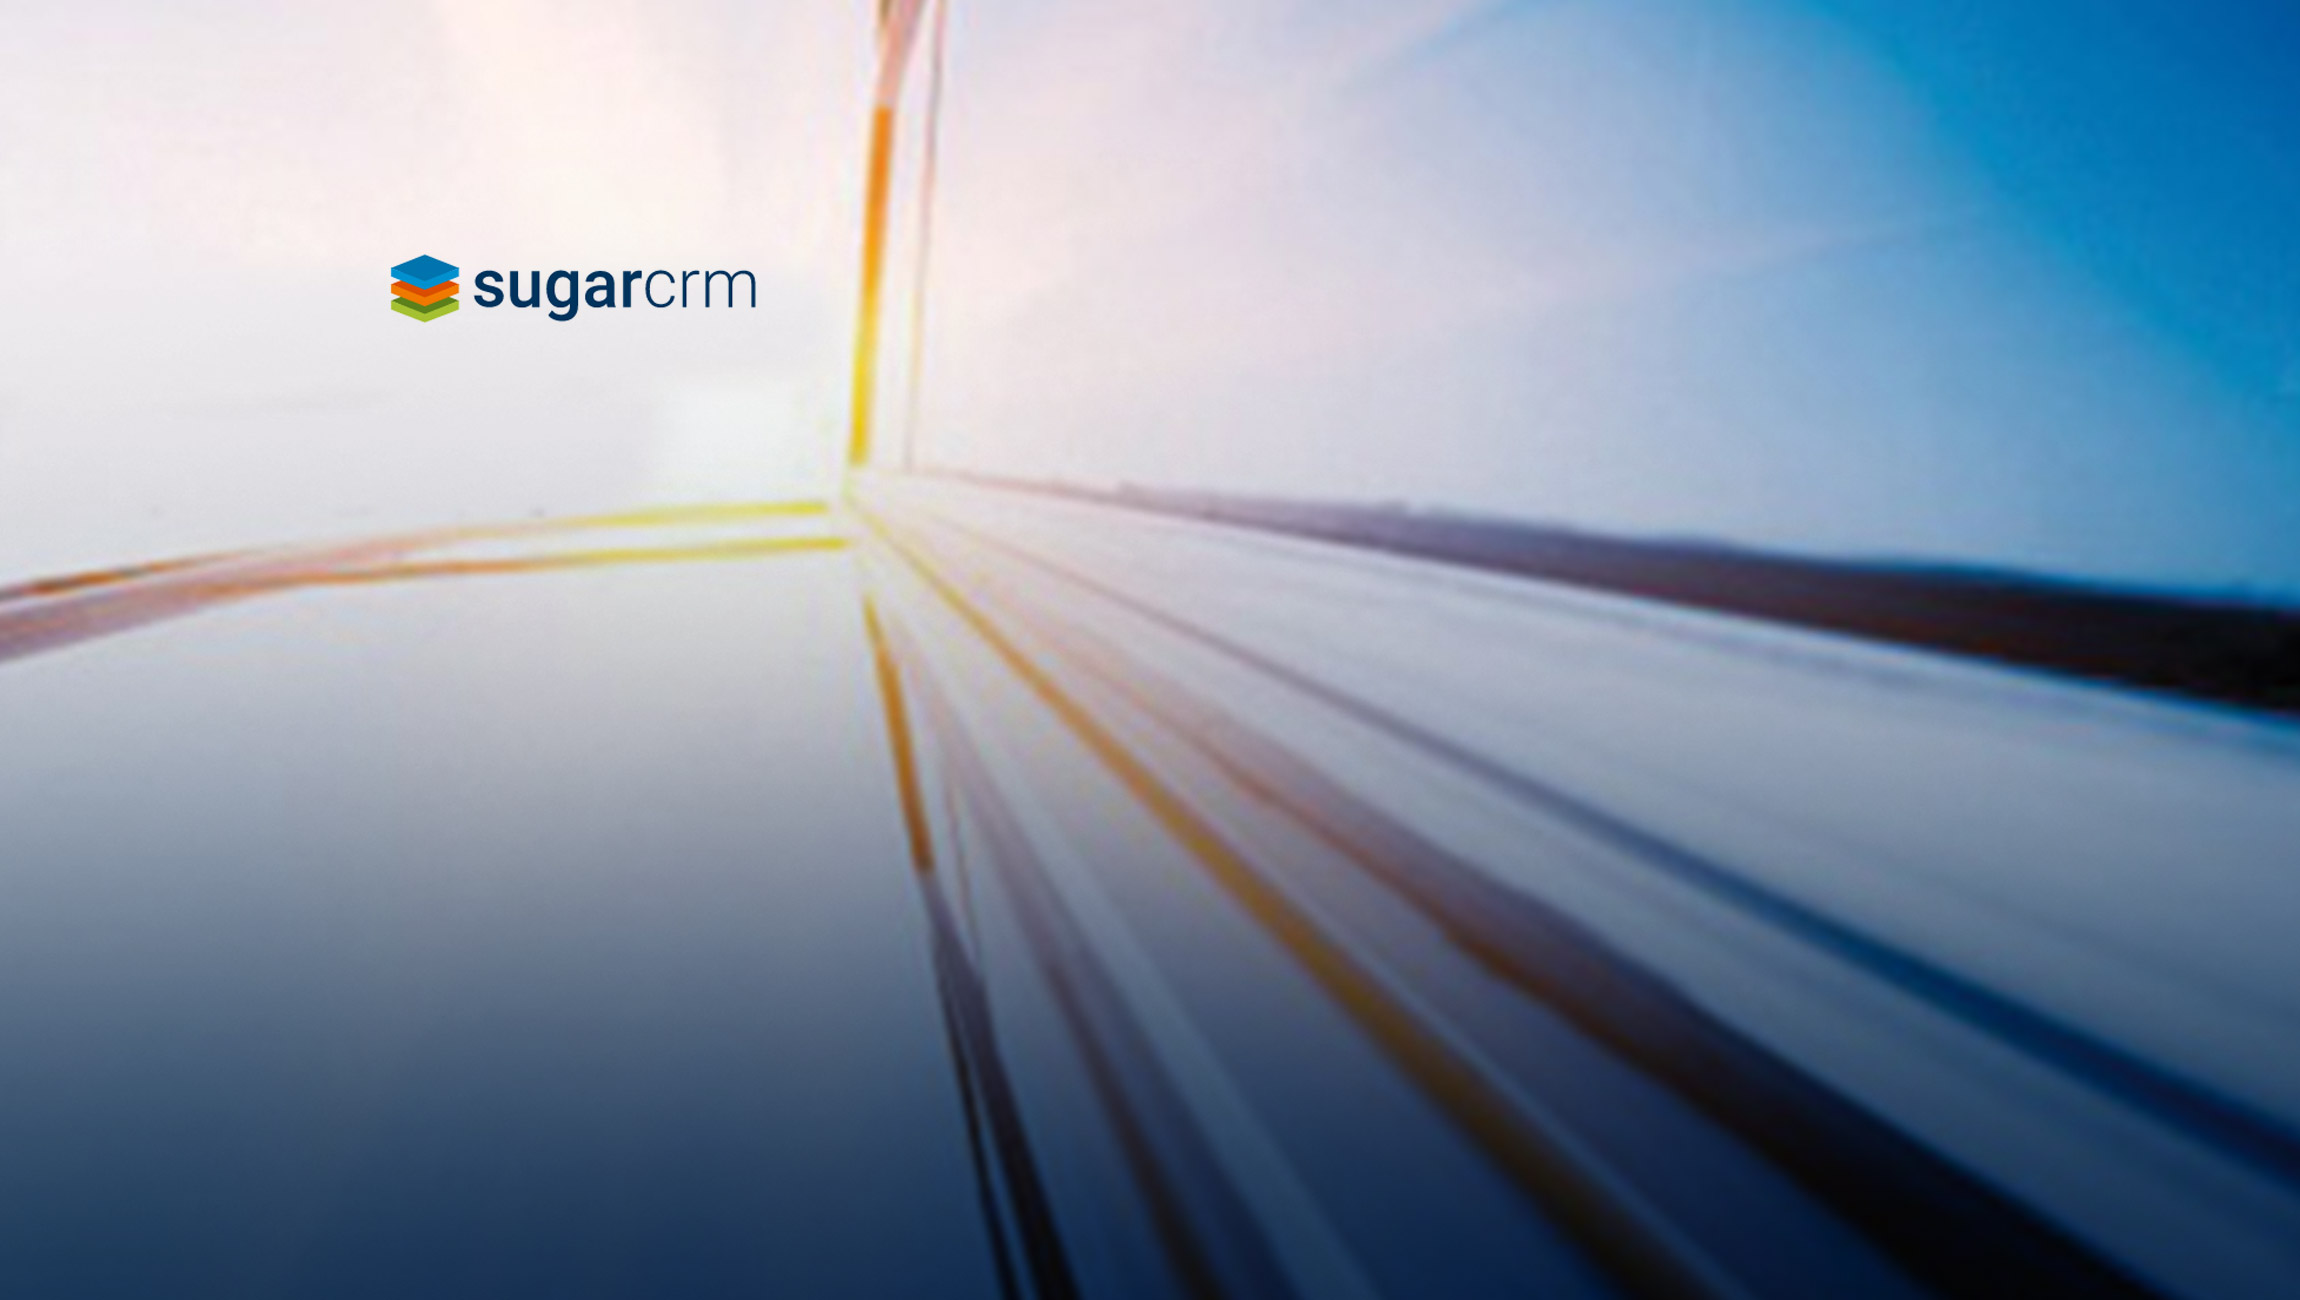 SugarCRM Wins 2021 CRM Excellence Award